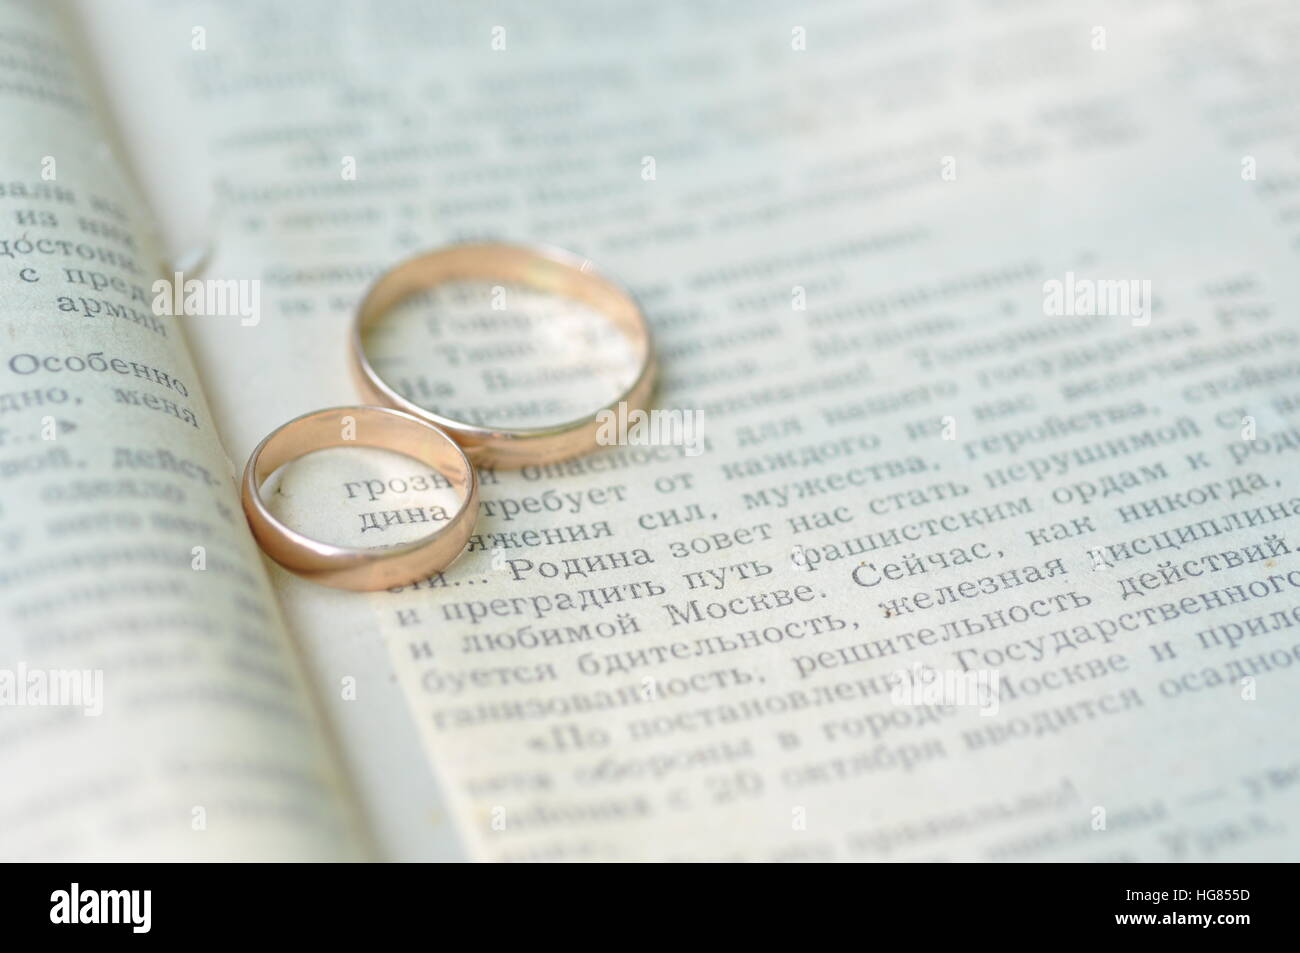 Wedding rings forming a heart onto a book - Stock Image